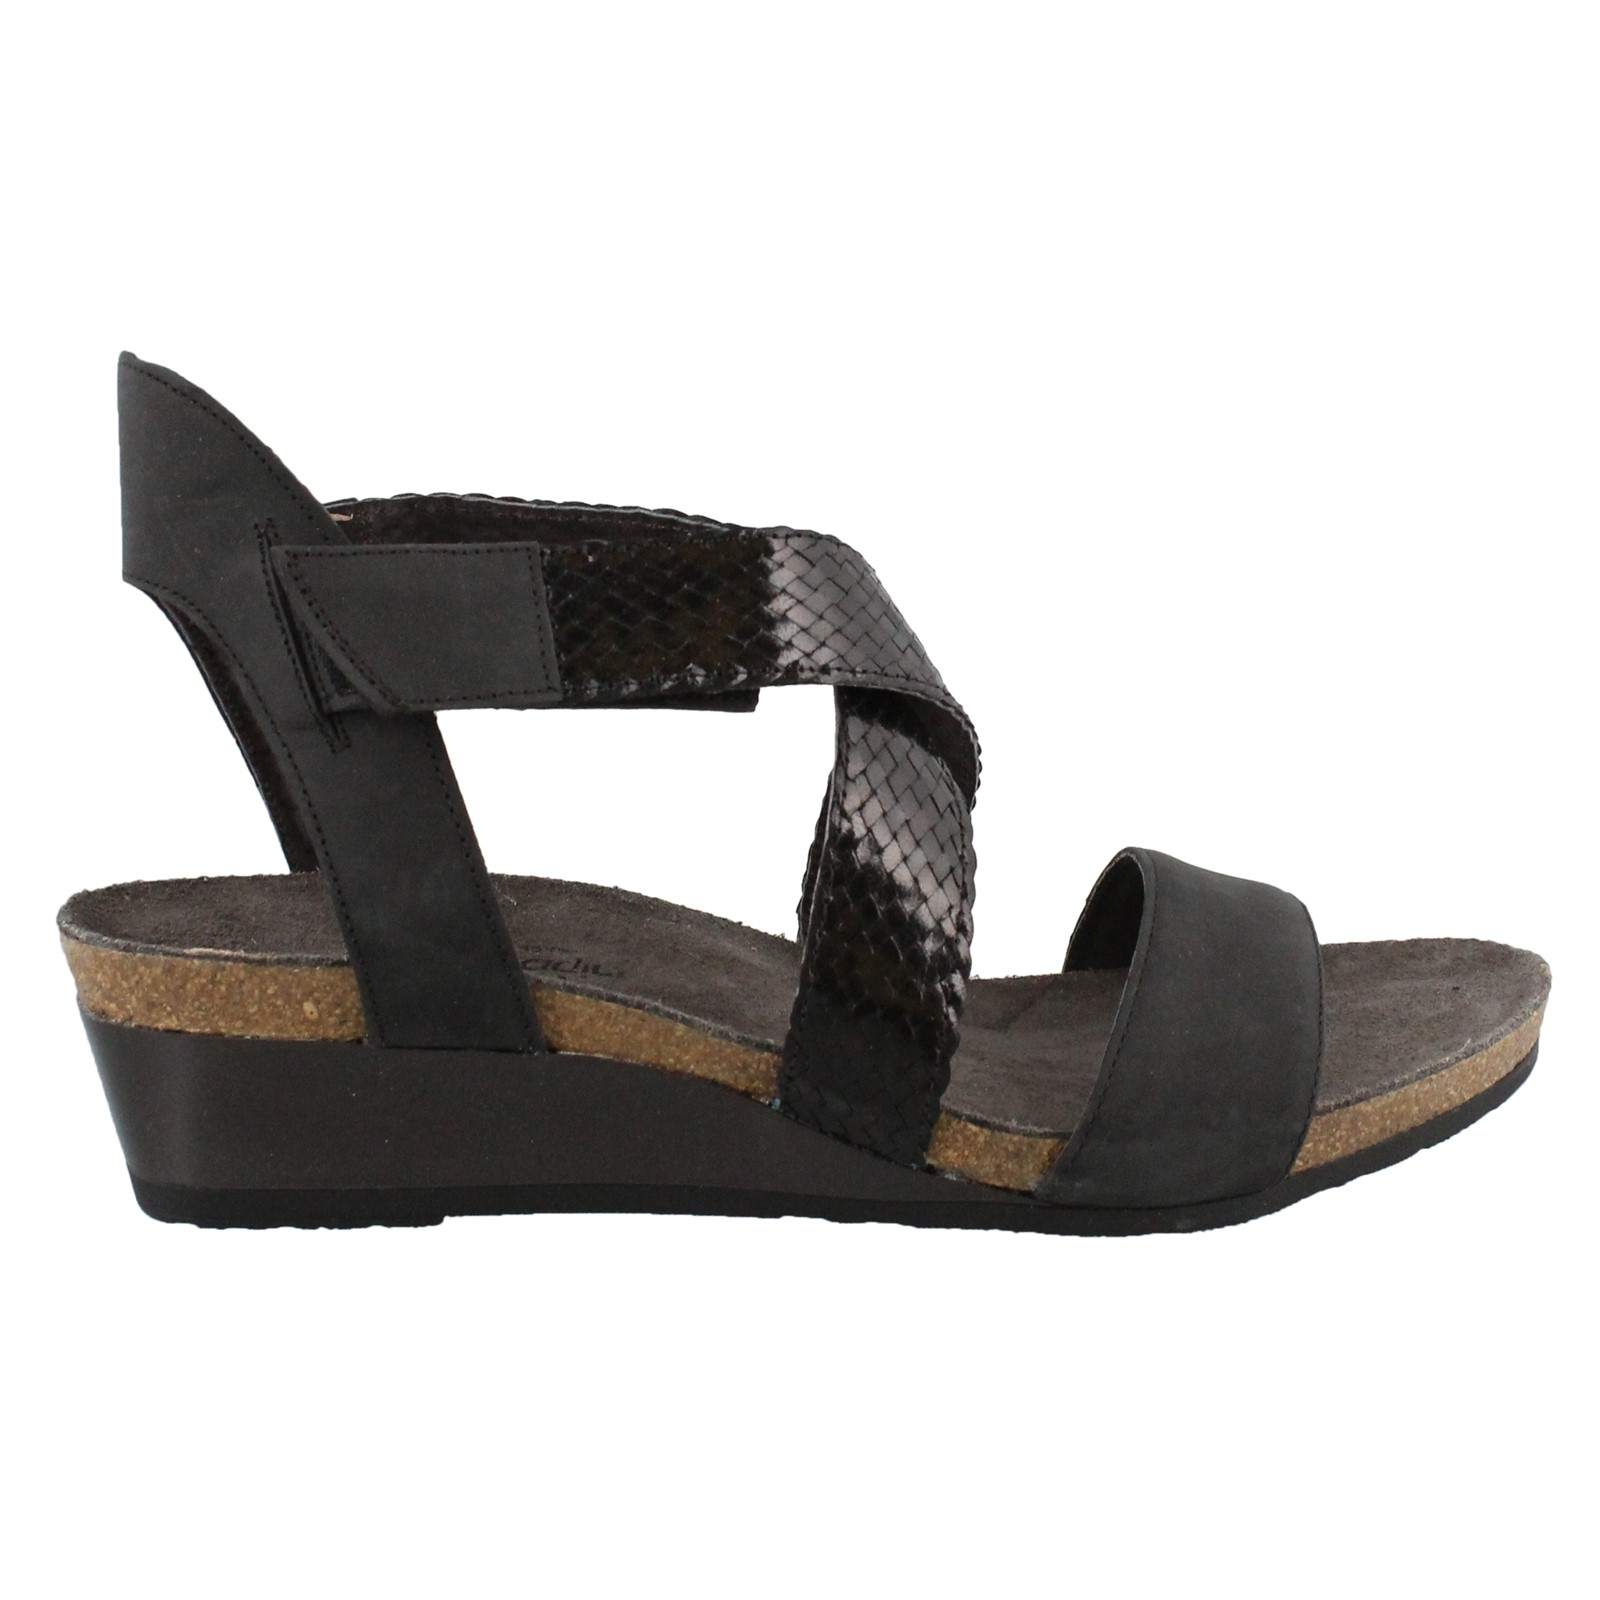 Women's Naot, Cupid Wedge Sandals